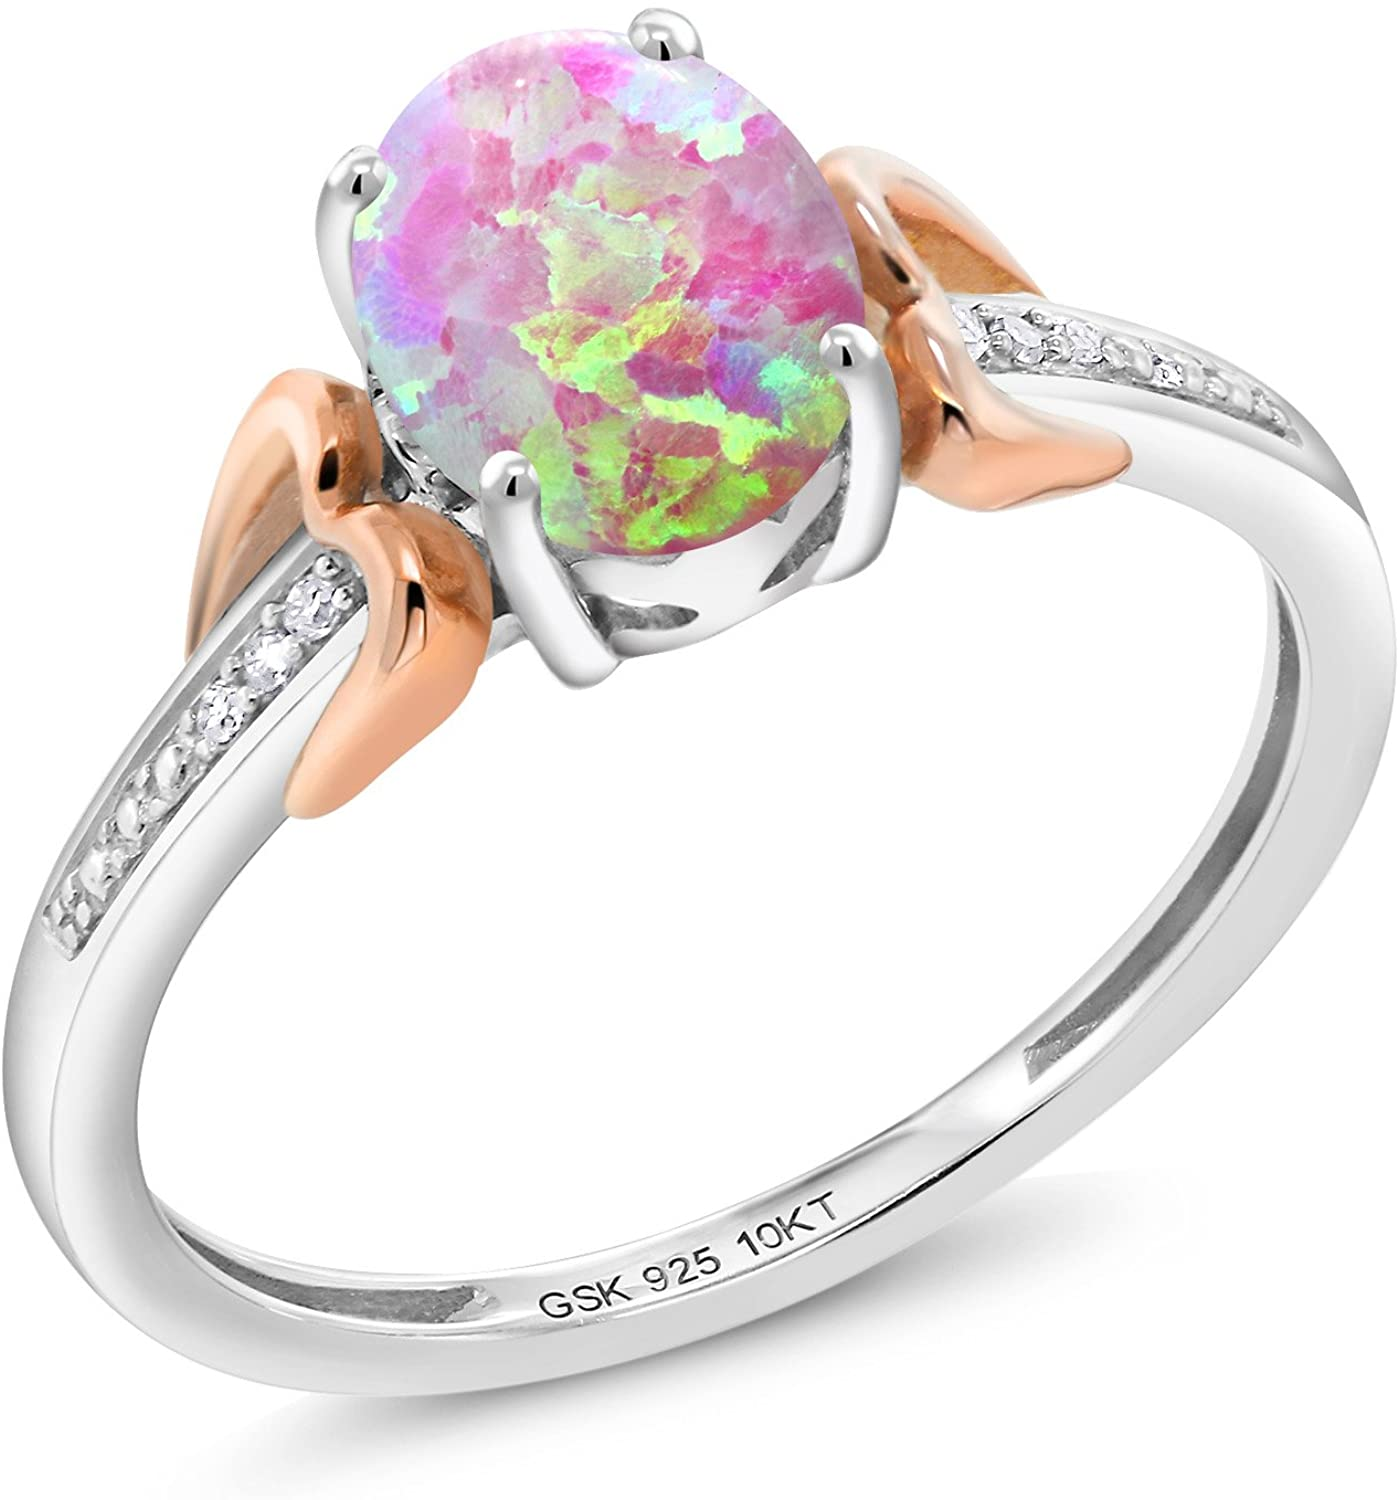 Gem Stone King 1.05 Ct Oval Cabochon Pink Simulated Opal 925 Silver With Diamond 10K Rose Gold Engagement Ring